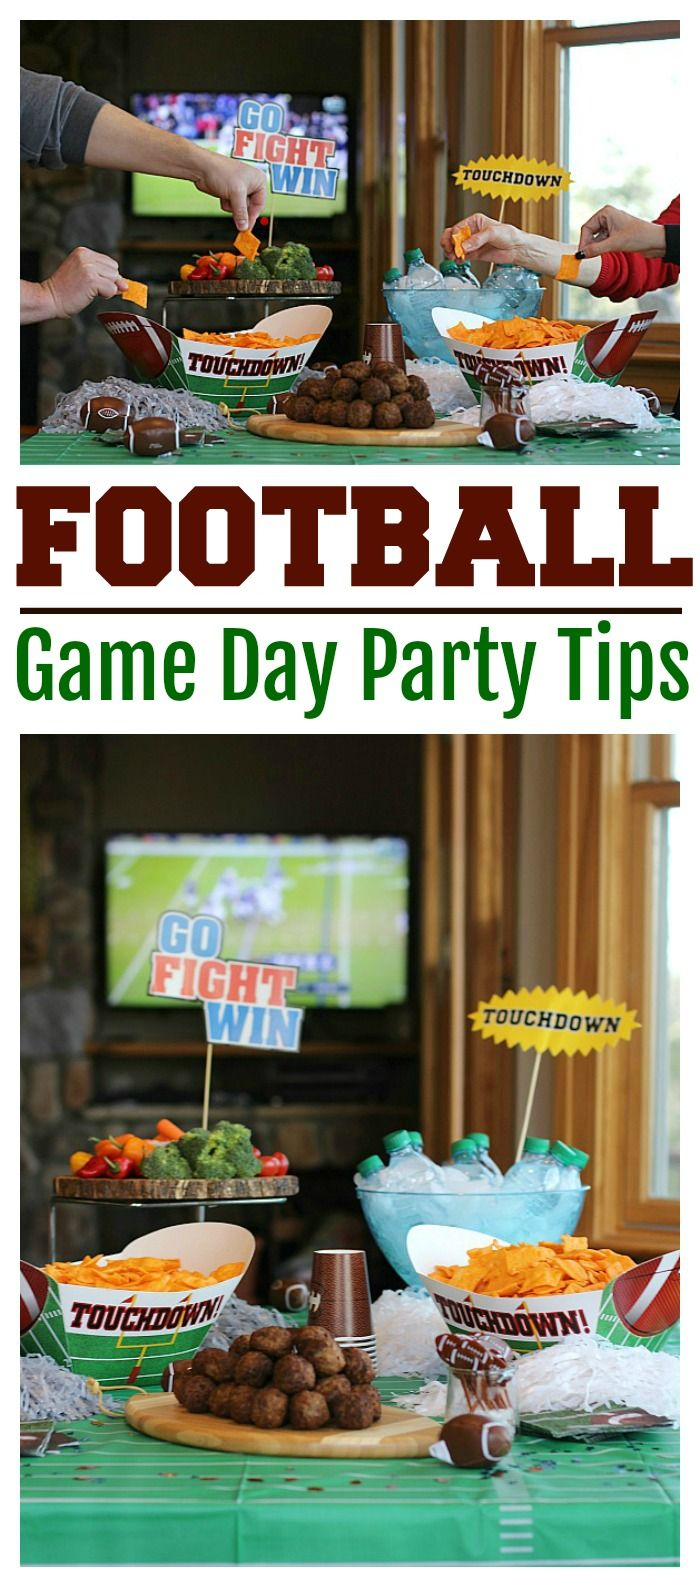 Football Game Day Party Tips (With images) Game day